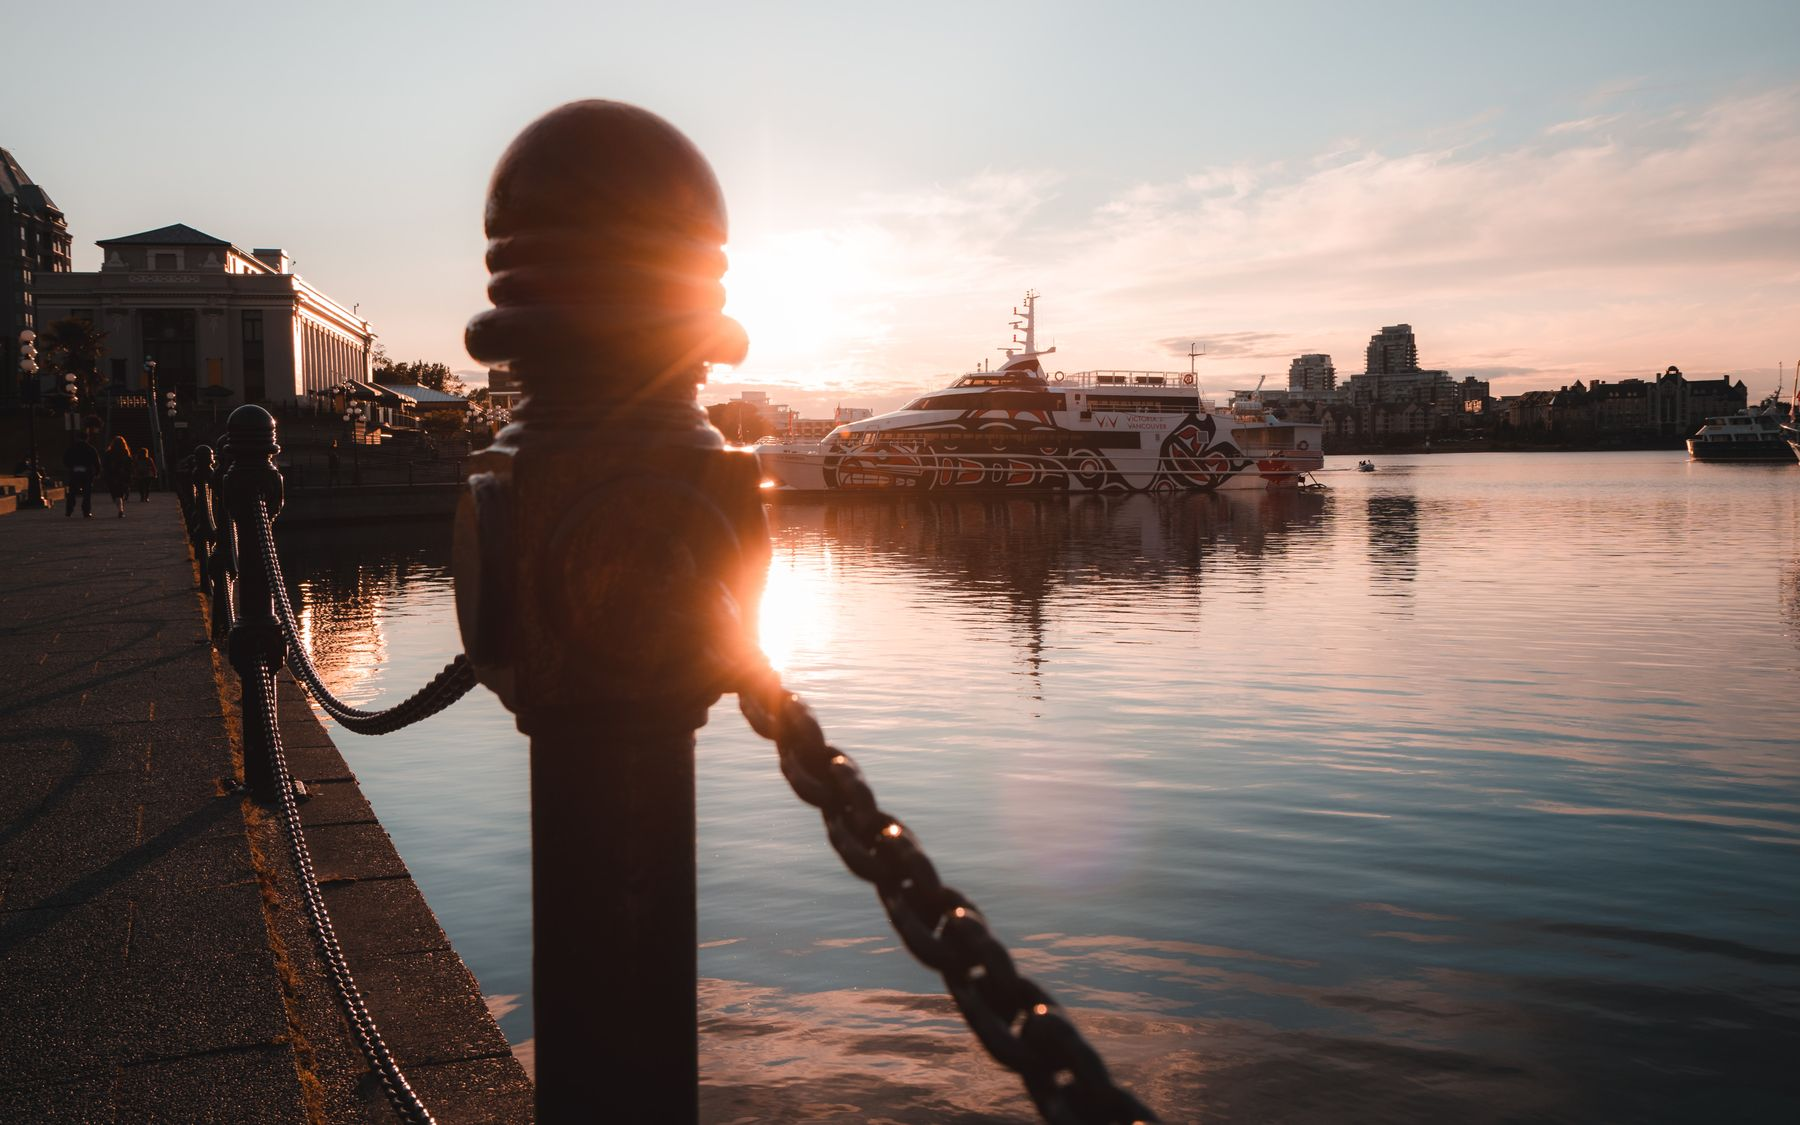 Inner harbour Victoria at sunset